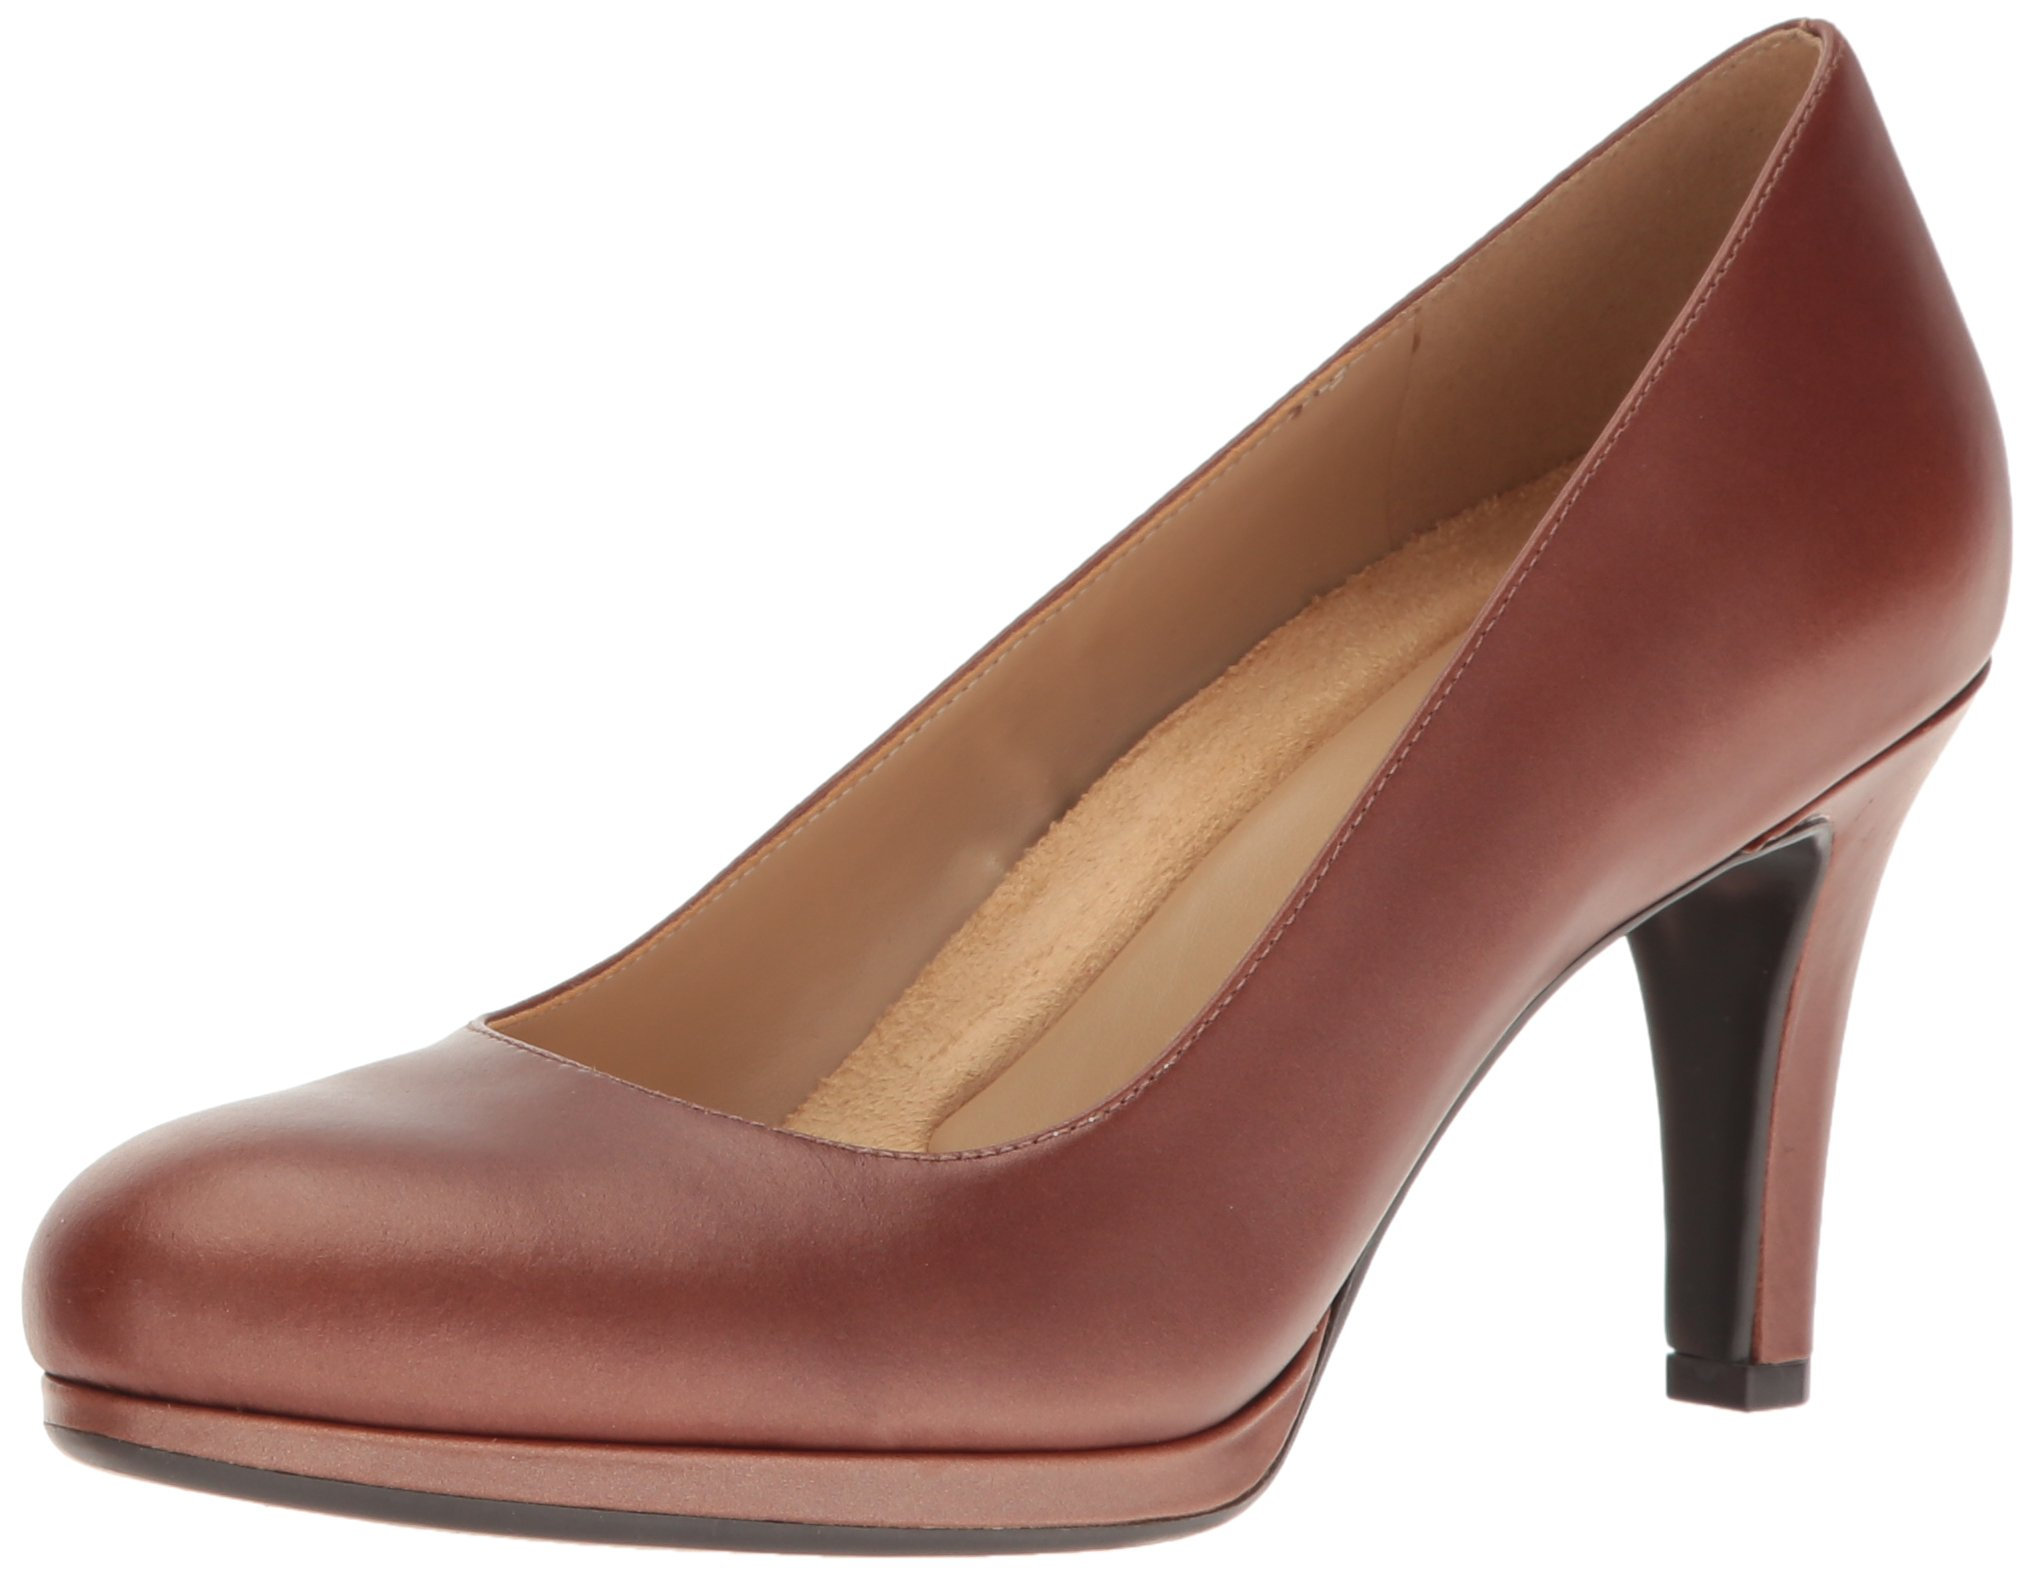 Naturalizer Women's Michelle Platform Pump, Caramel, 8.5 M US